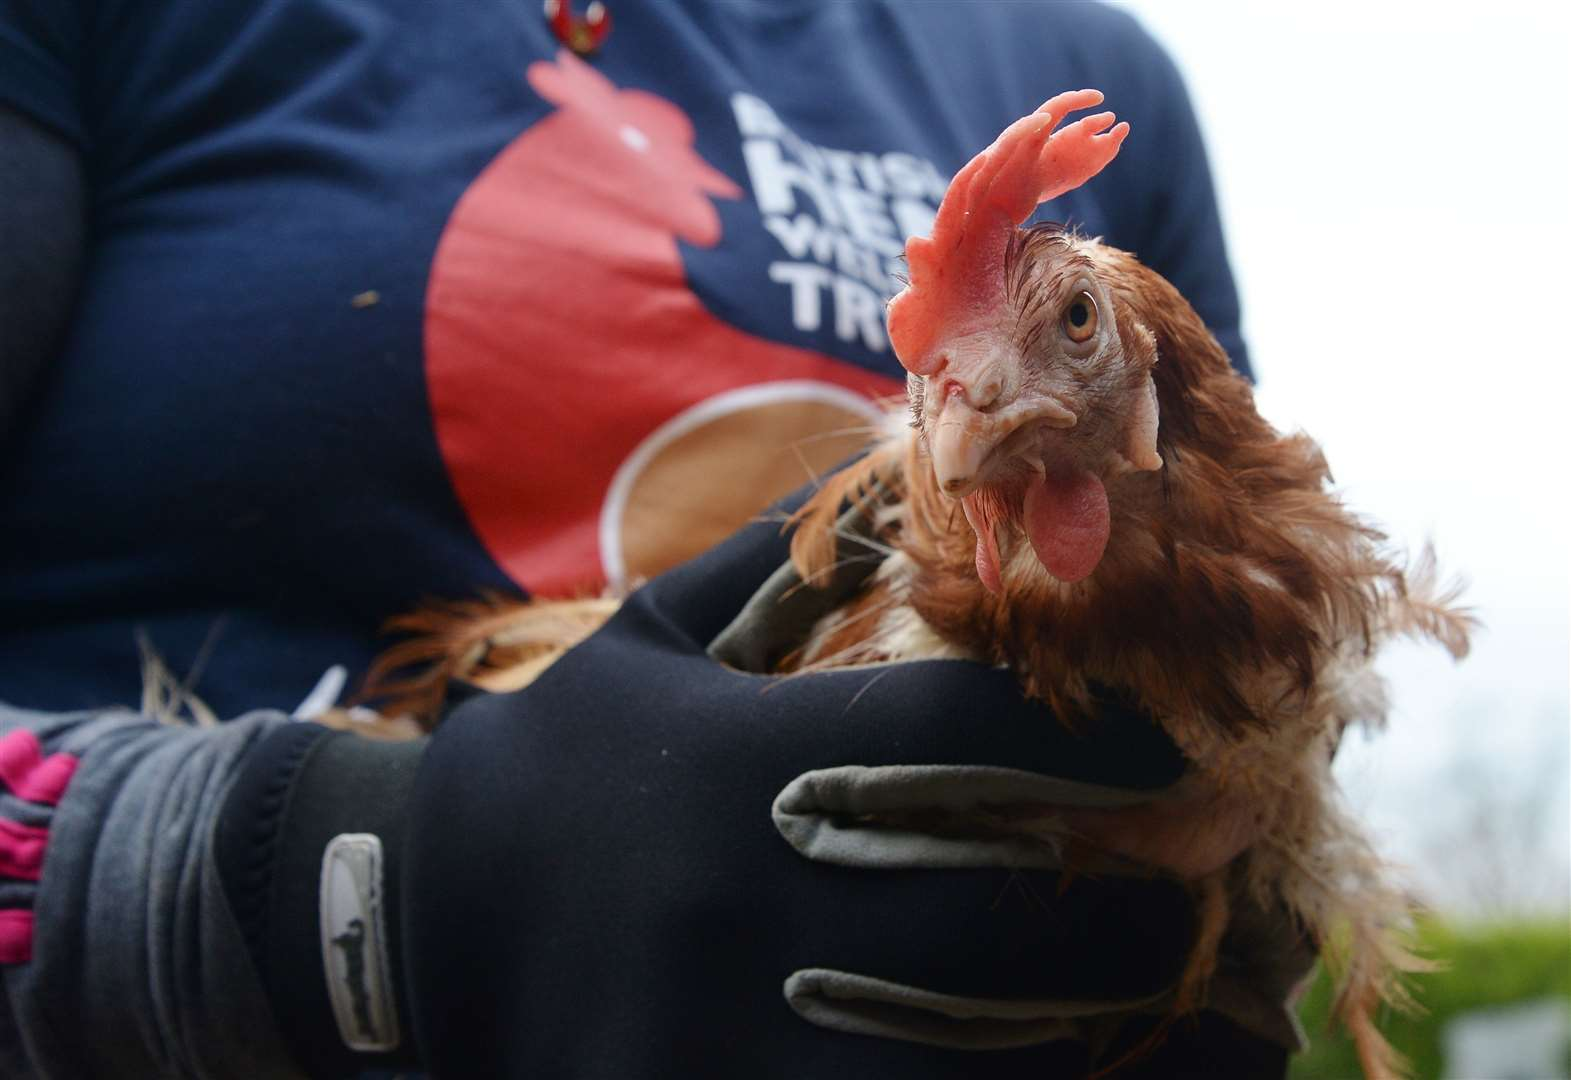 Hens that would otherwise be destined for slaughter need a home